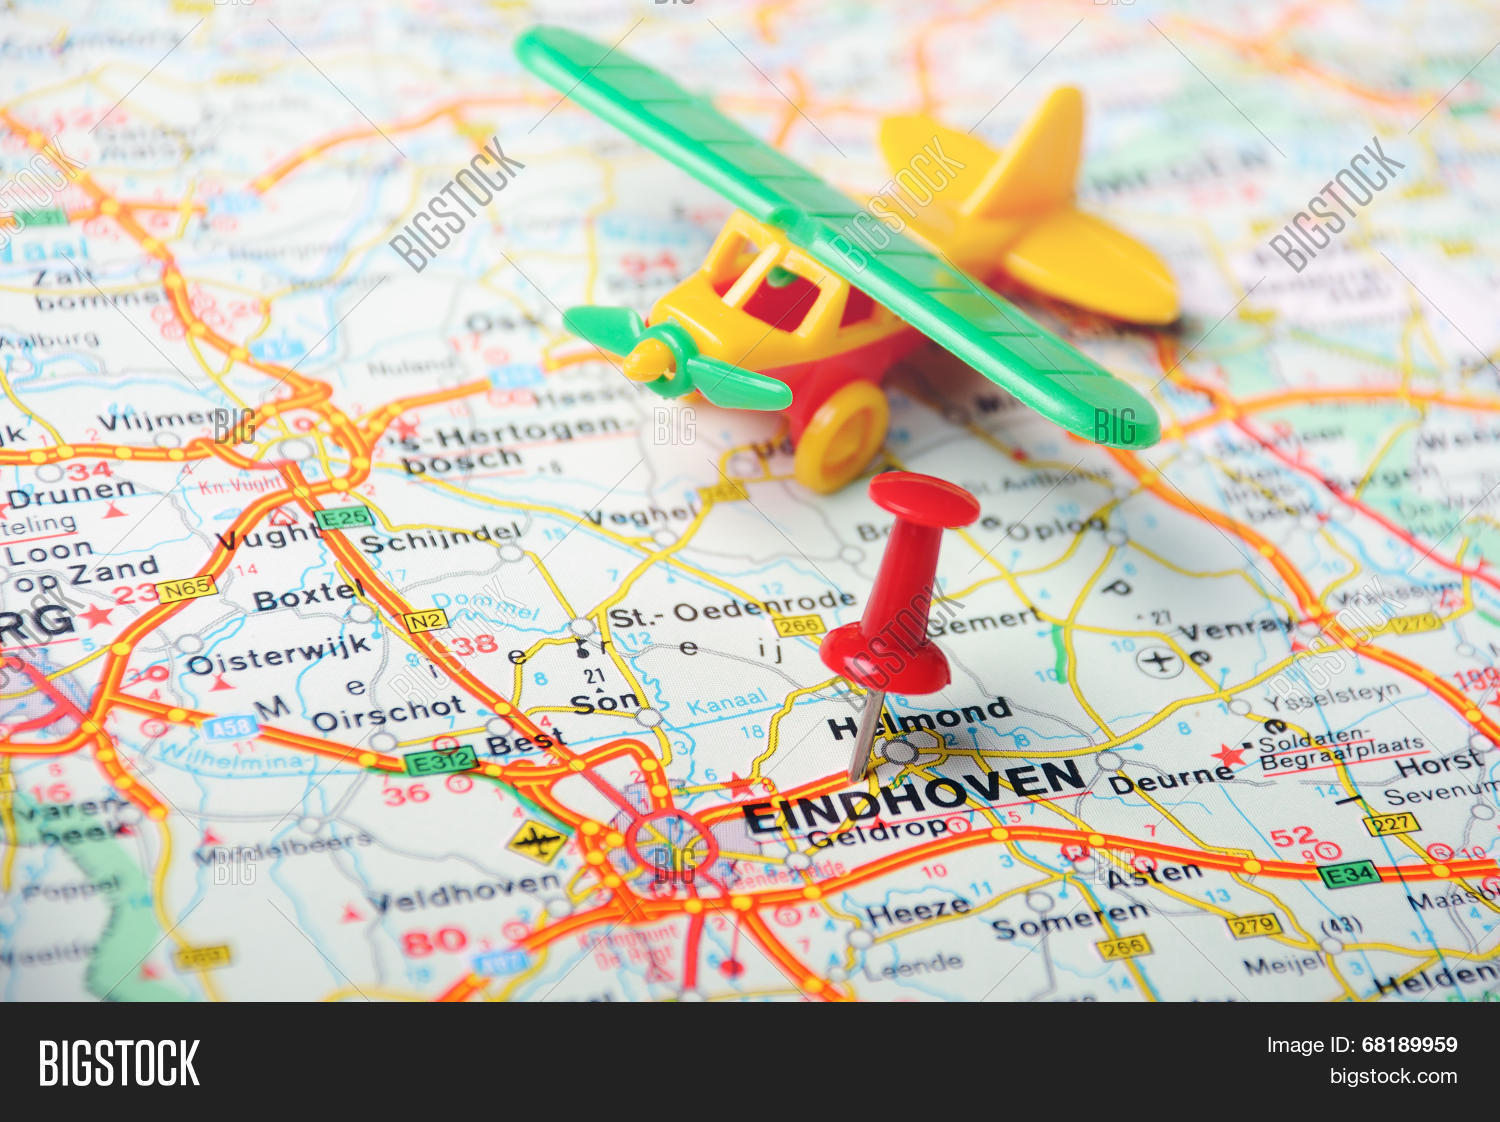 Eindhoven,holland Map Image & Photo (Free Trial) | Bigstock